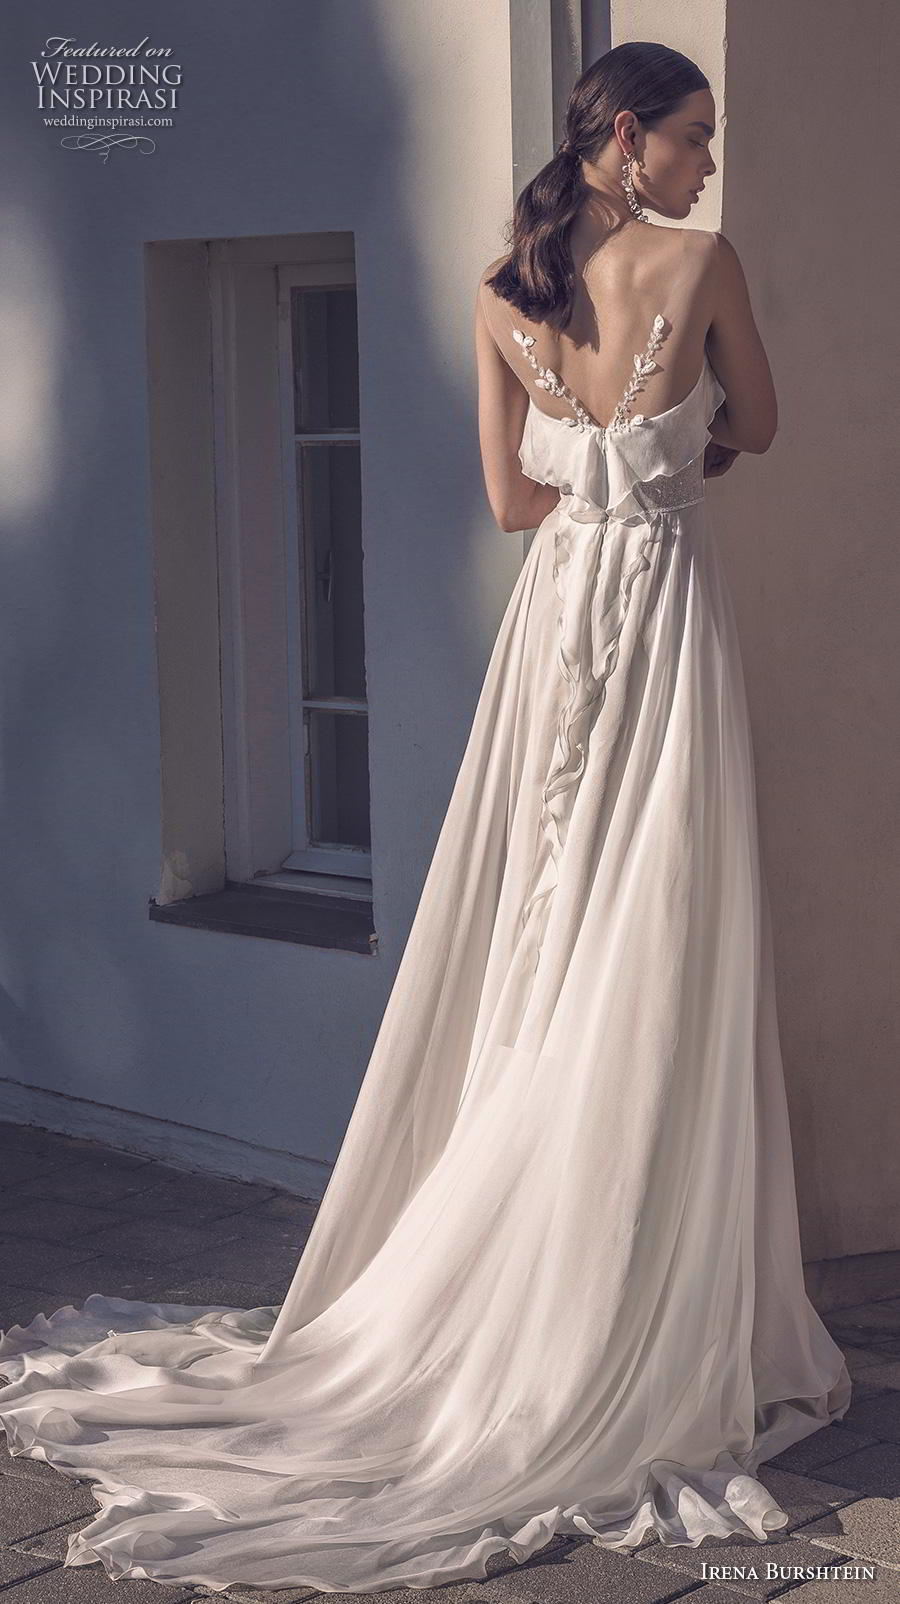 irena burshtein 2020 bridal sleeveless thin strap deep sweetheart neckline simple bohemian soft a  line wedding dress v back medium train (11) bv